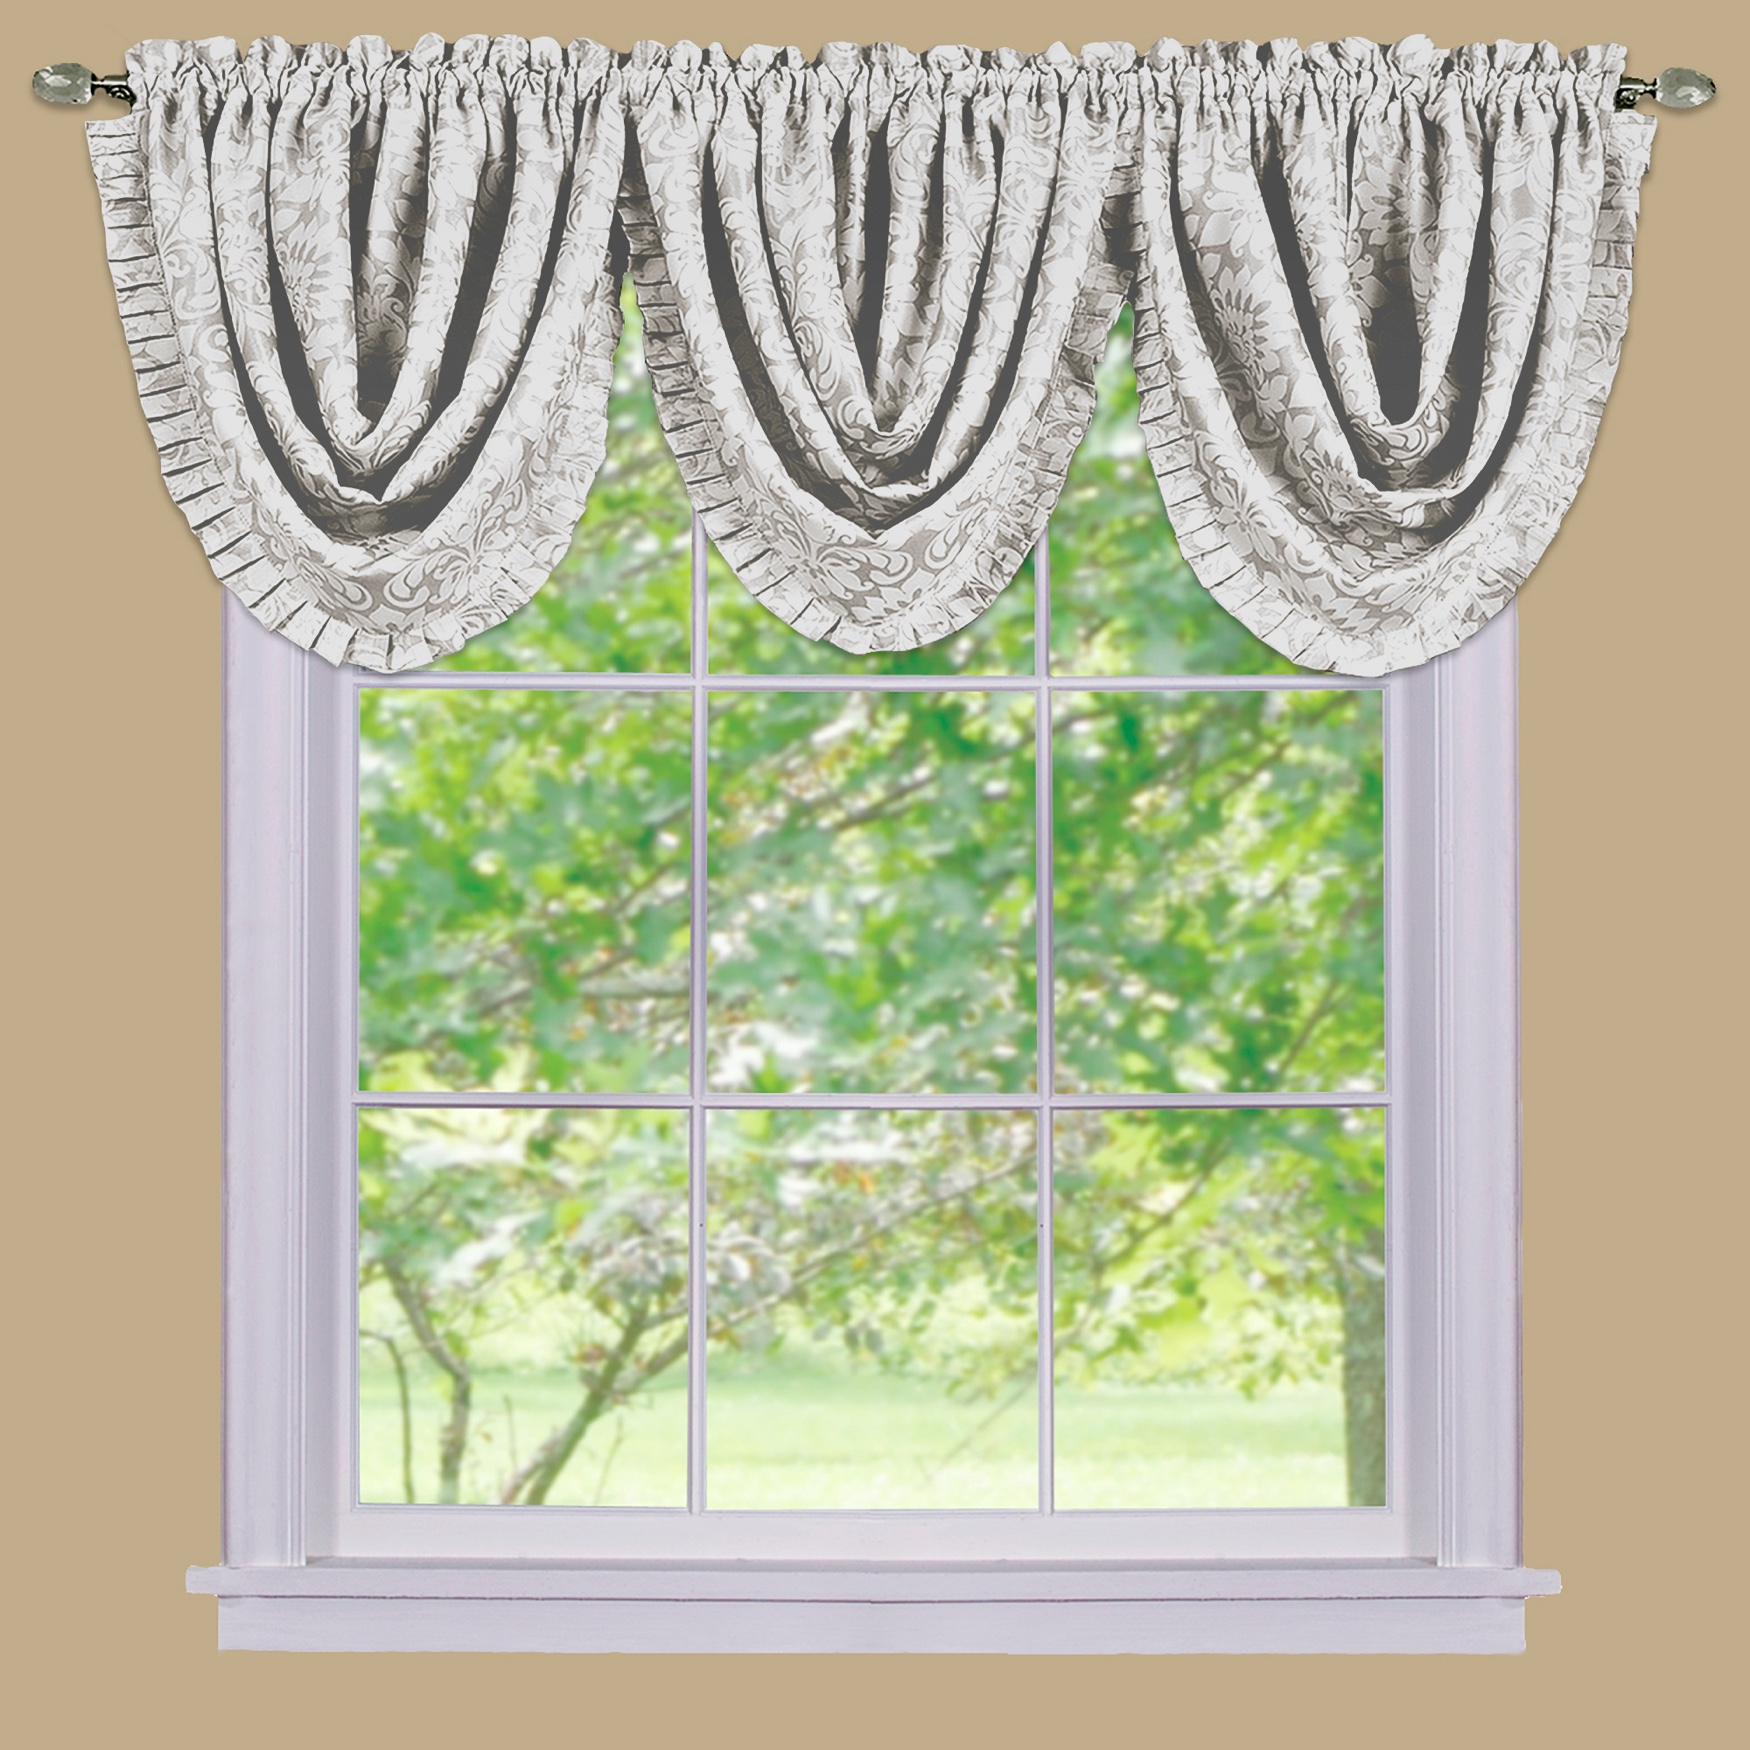 Ombre Waterfall Valance,